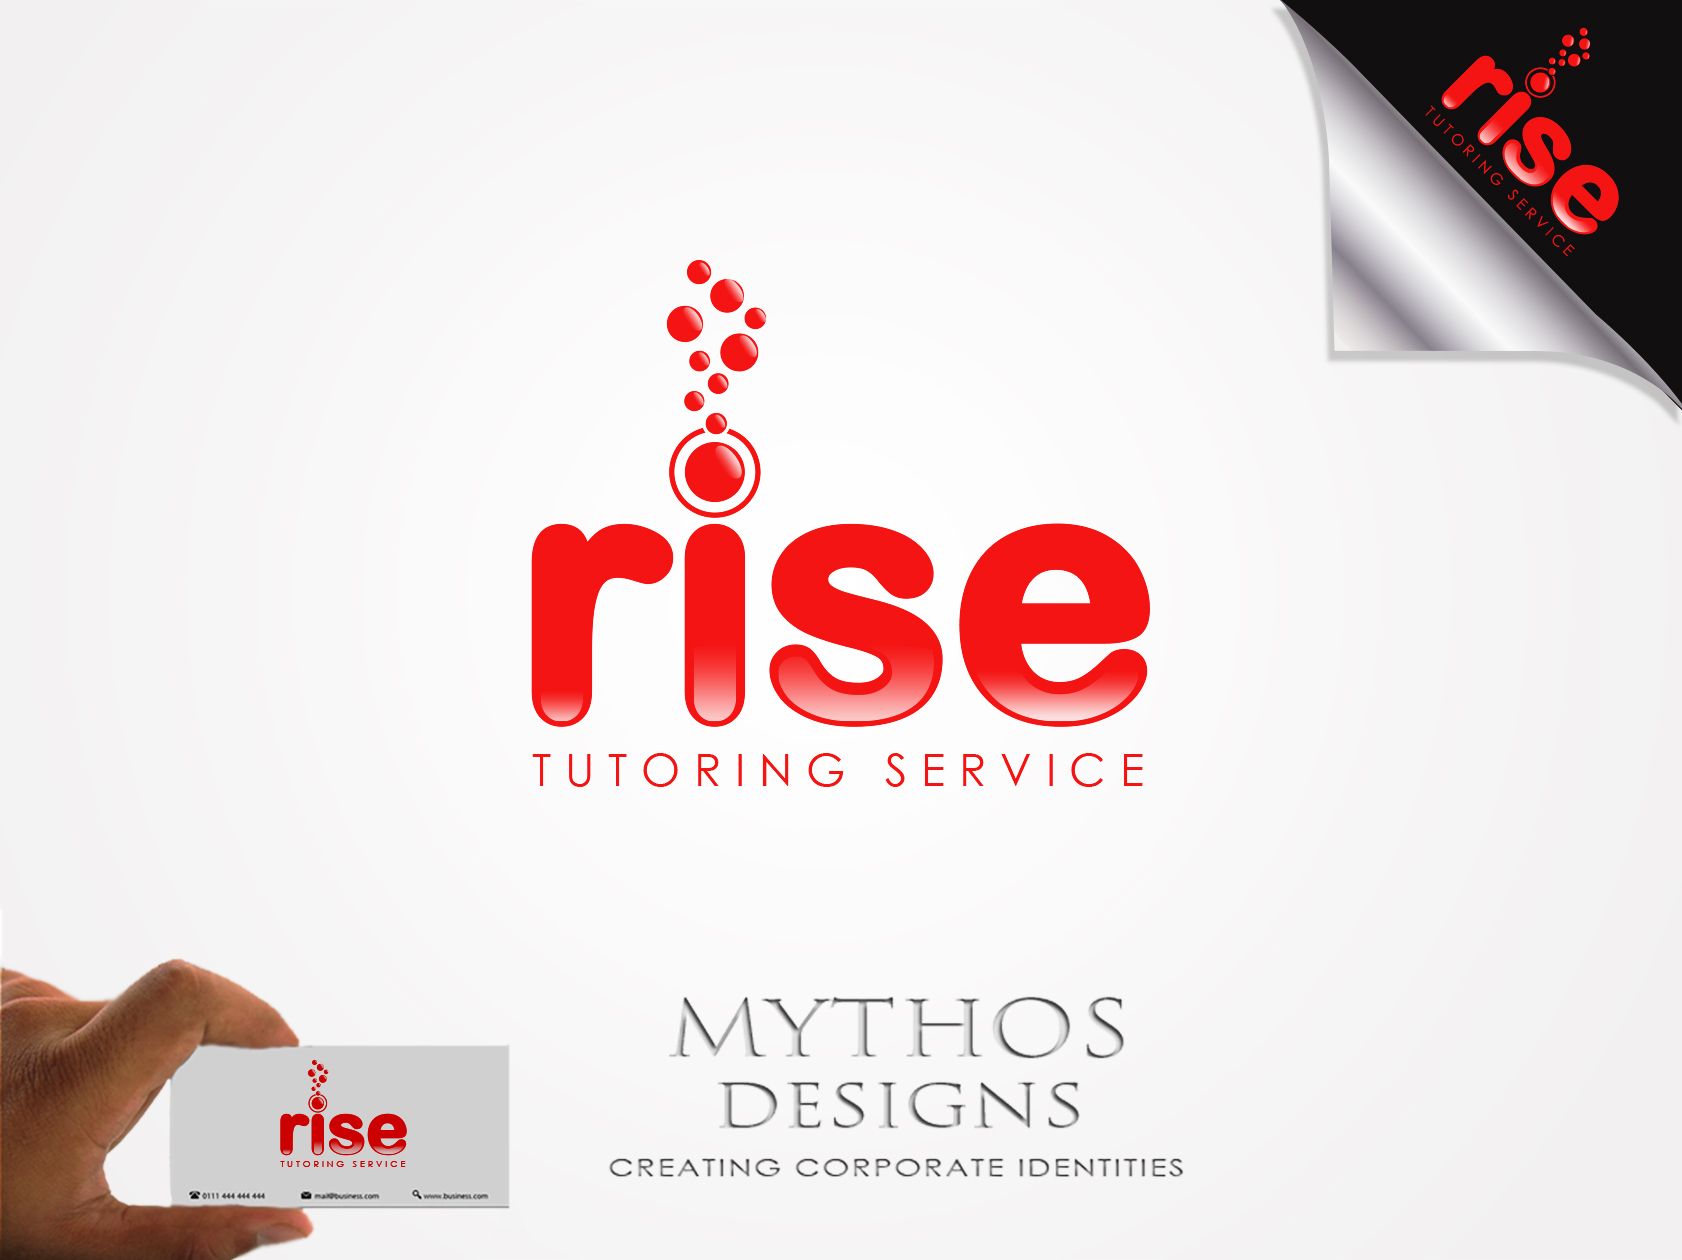 Logo Design by Mythos Designs - Entry No. 249 in the Logo Design Contest Imaginative Logo Design for Rise Tutoring Service.